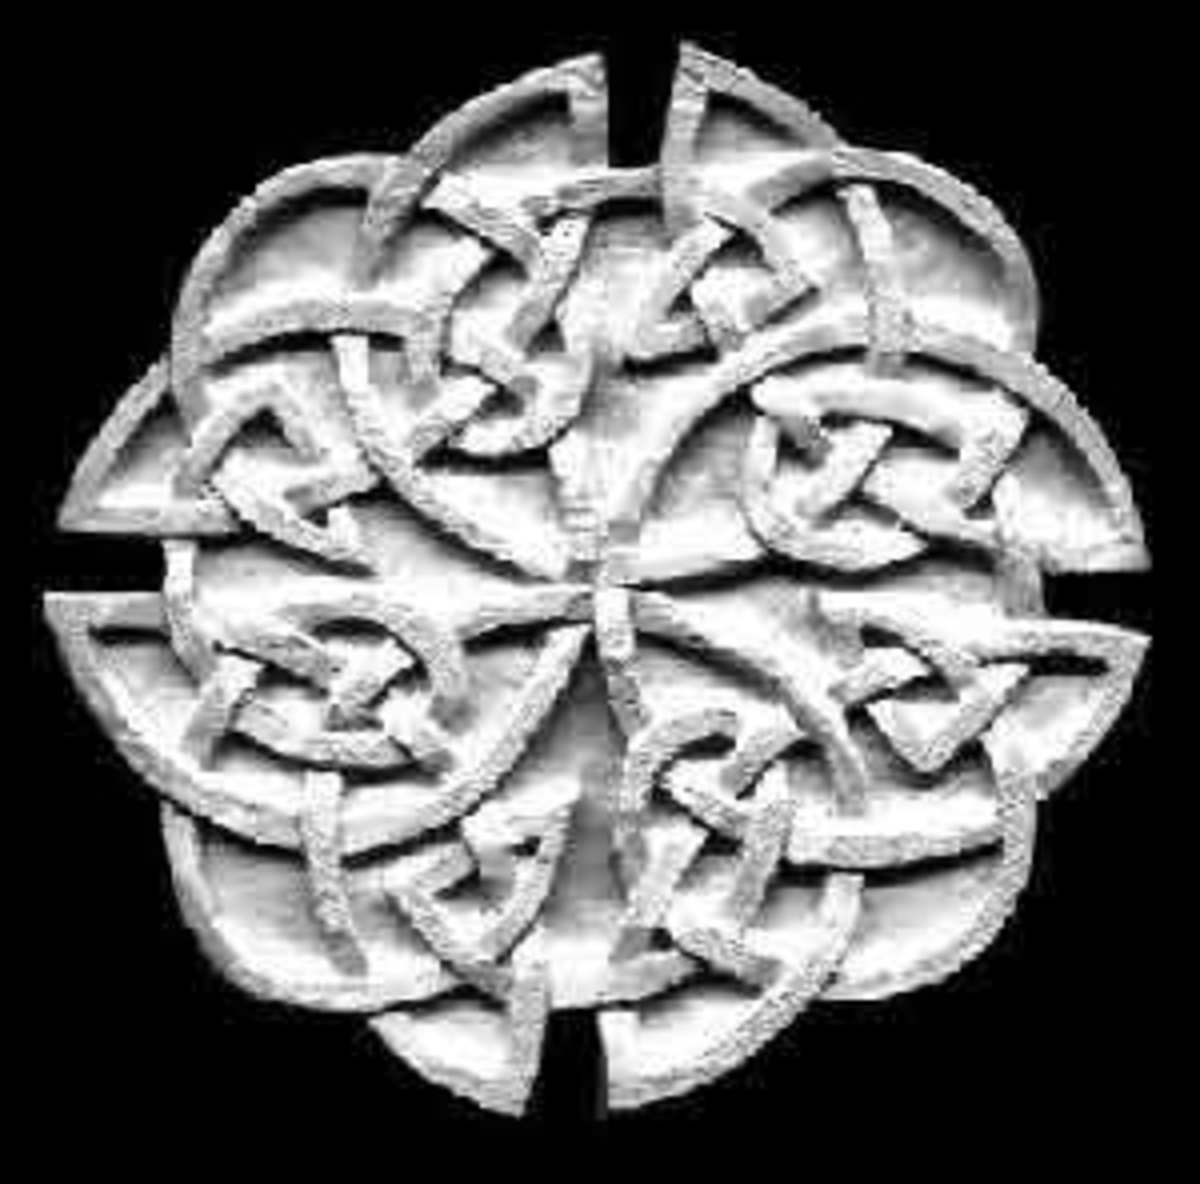 Celtic knotwork designs have inspired the creation of much modern jewelry.